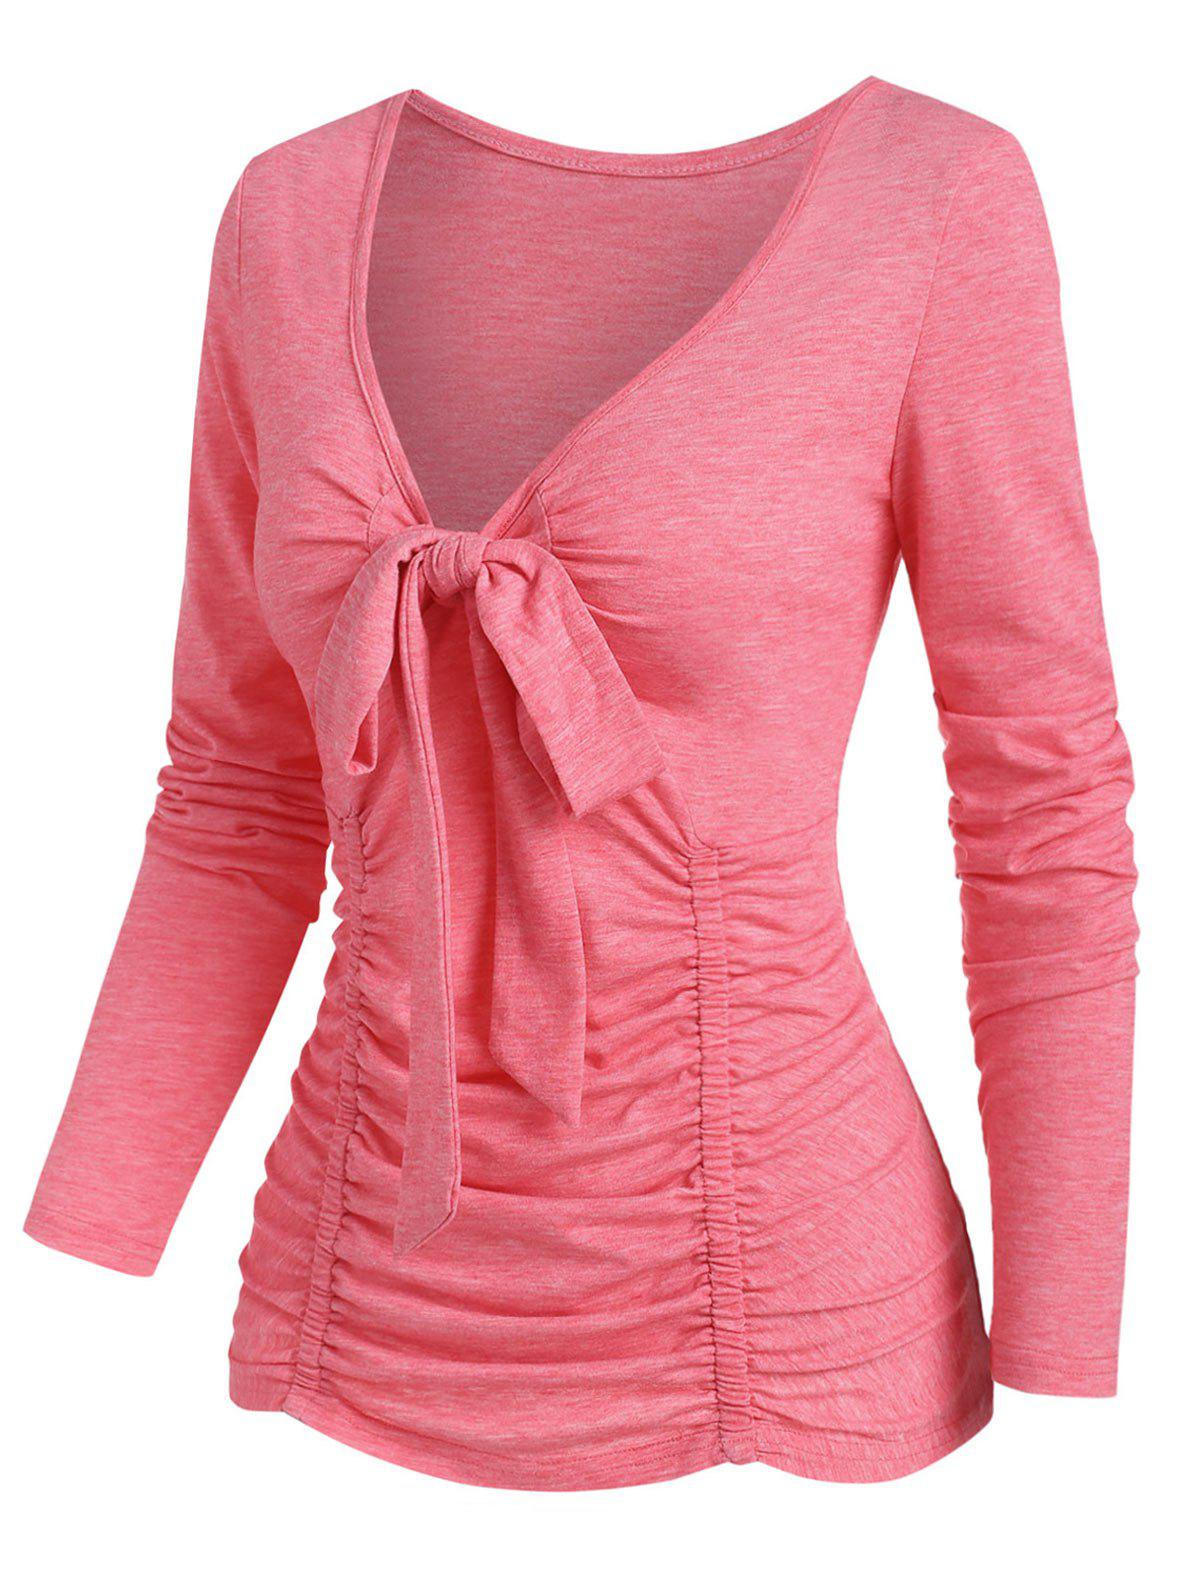 Bowknot Plunging Ruched T Shirt - LIGHT PINK L